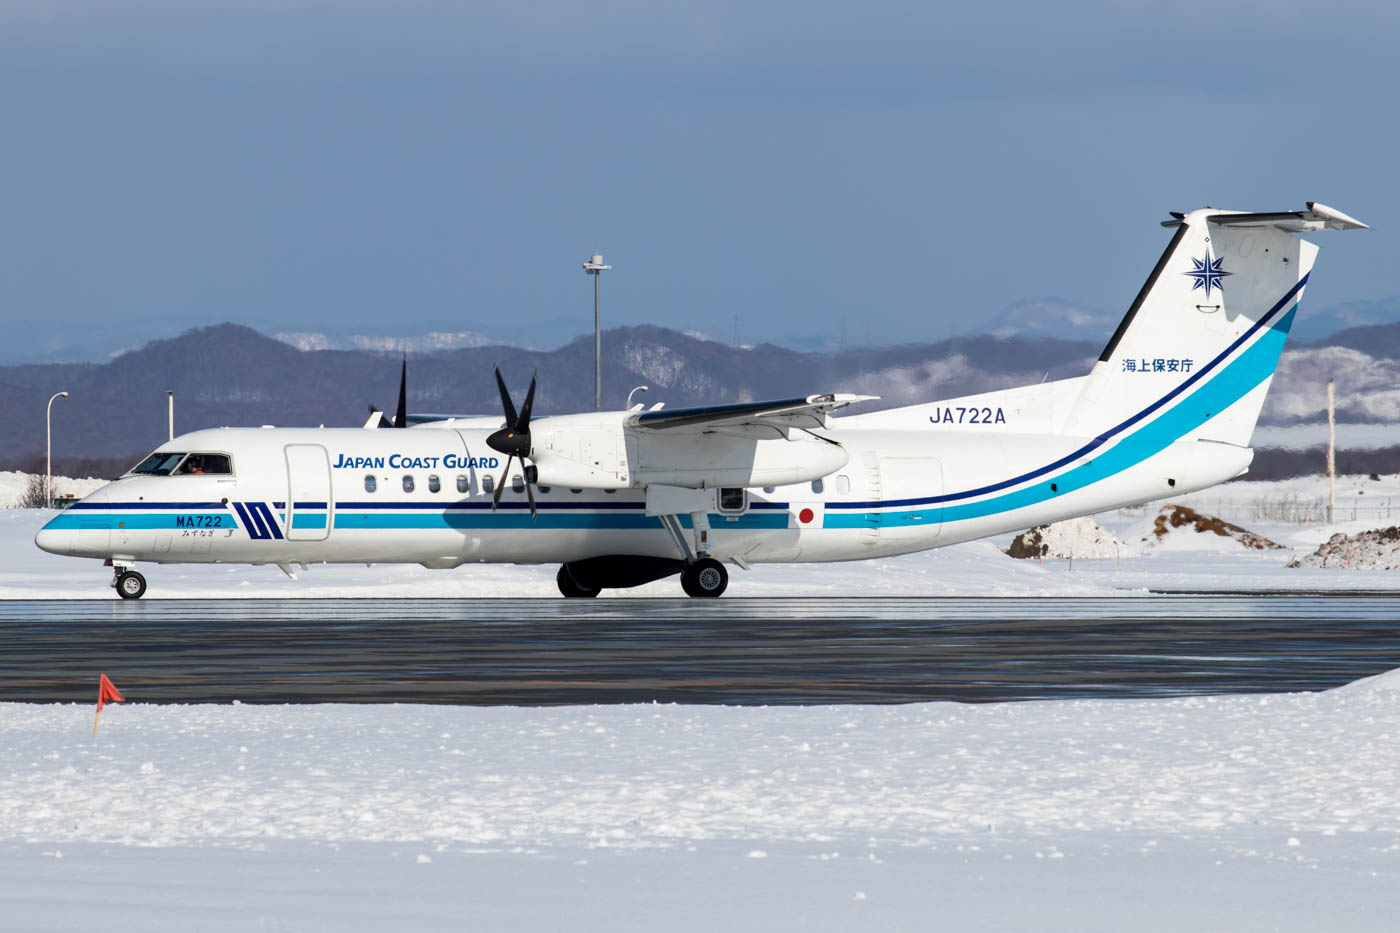 Japan Coast Guard DHC-8-300 Departing Chitose Airbase